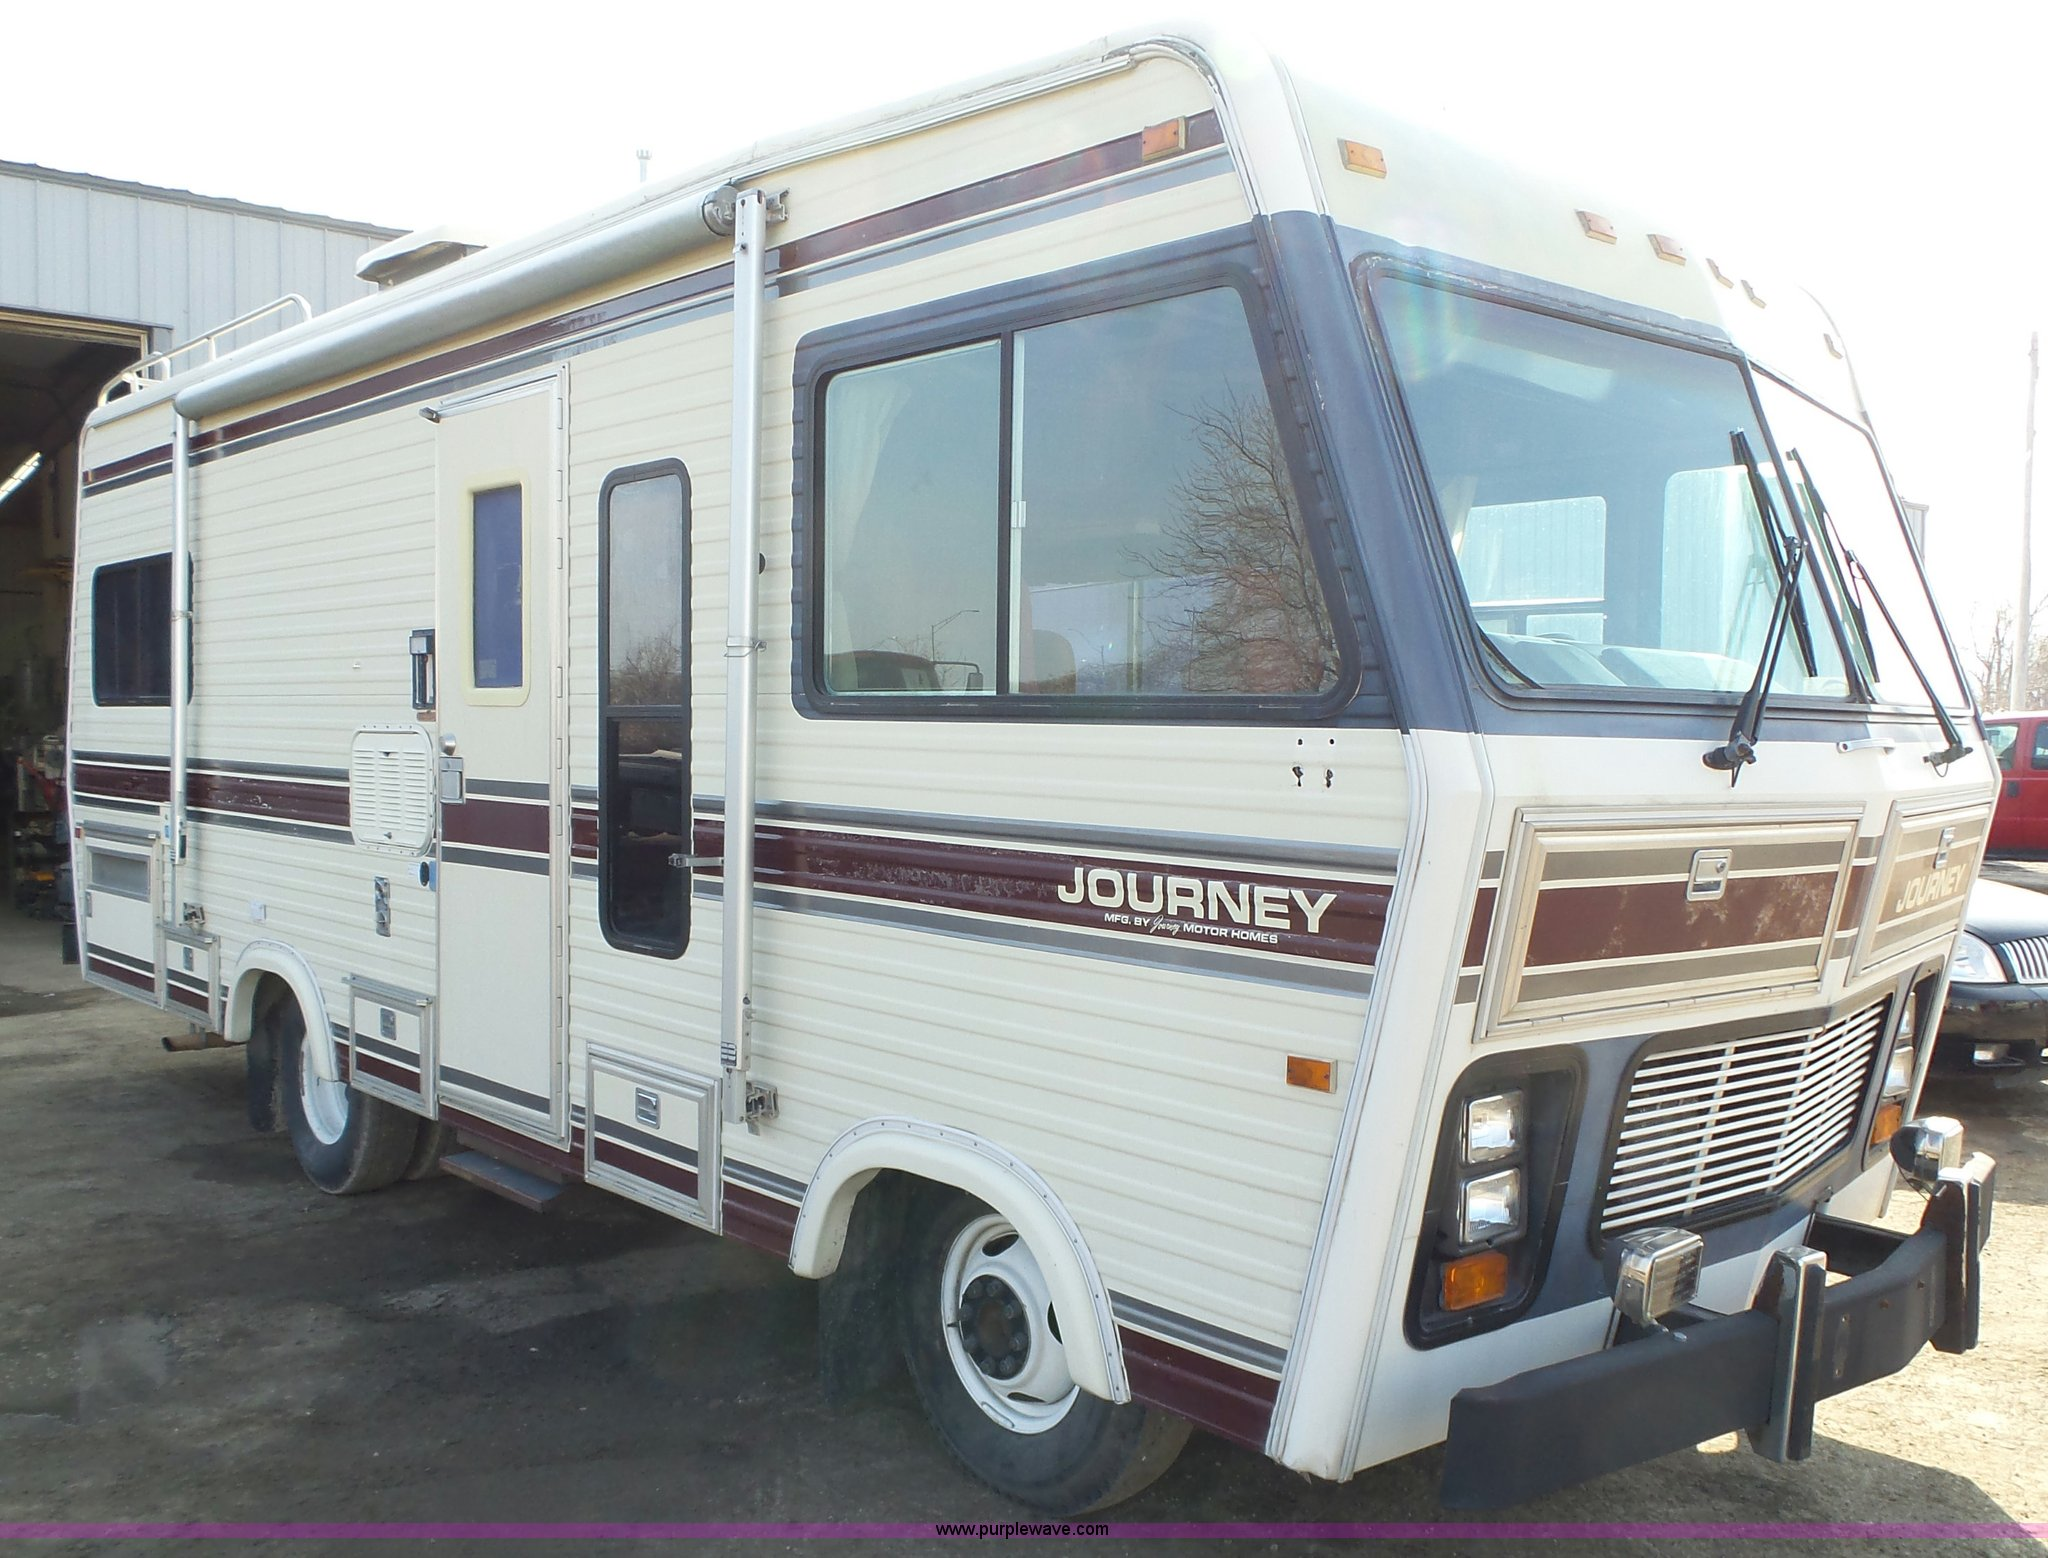 1985 Chevrolet Journey P30 RV | Item L5585 | SOLD! April 6 V